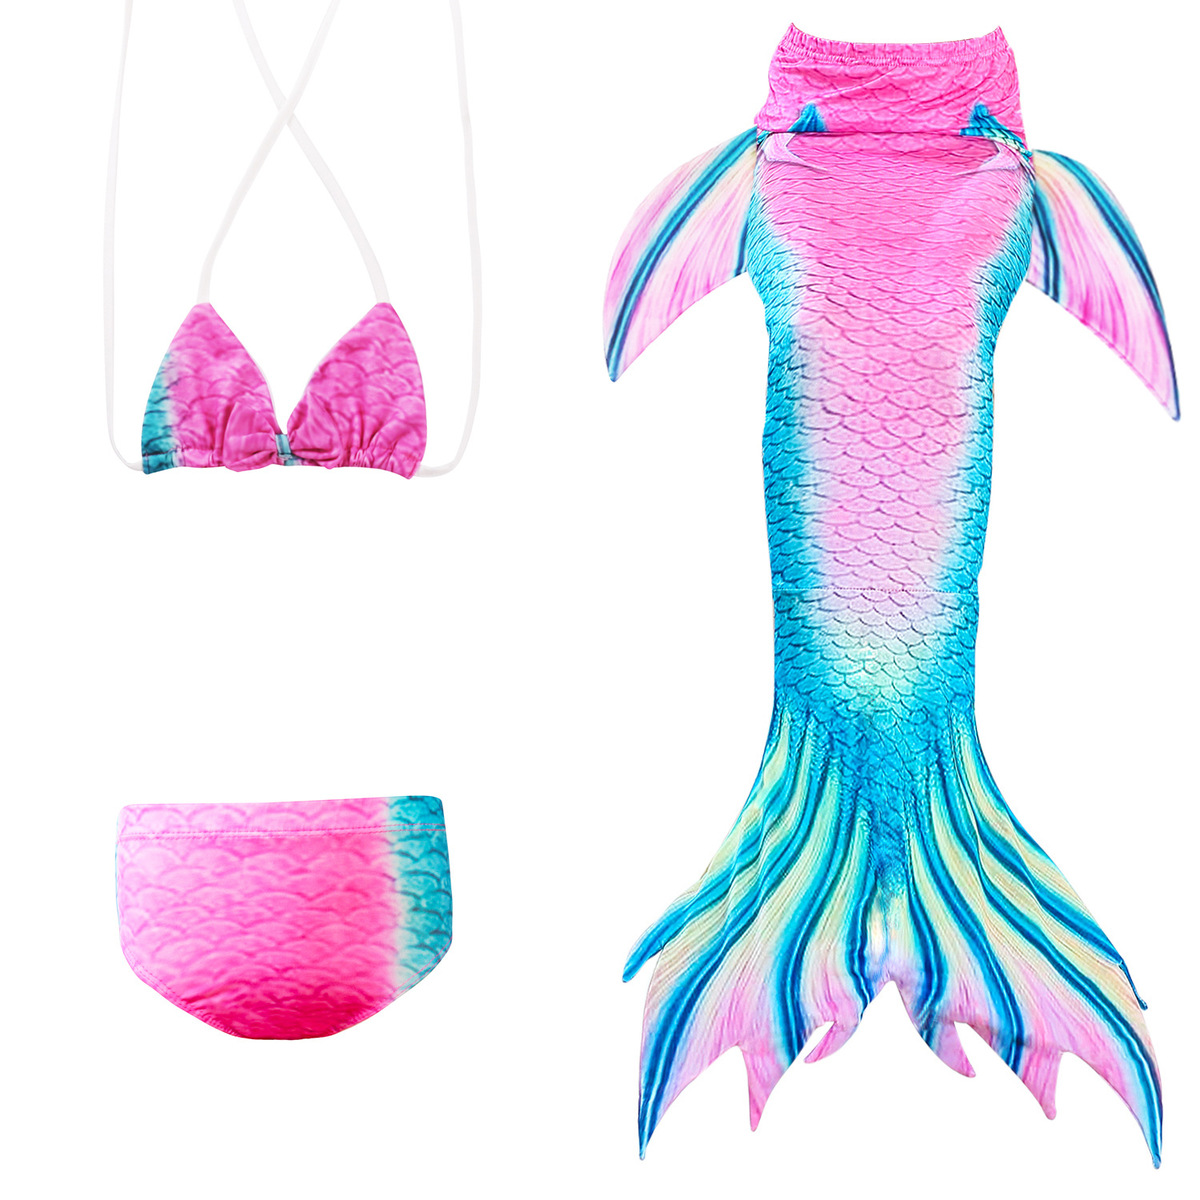 Mother & Kids New Girls Swimming Mermaid Tails Costume Cosplay Little Children Mermaid Swimsuit Tails 5 Rainbow Colors Swimwear Bathing Suit